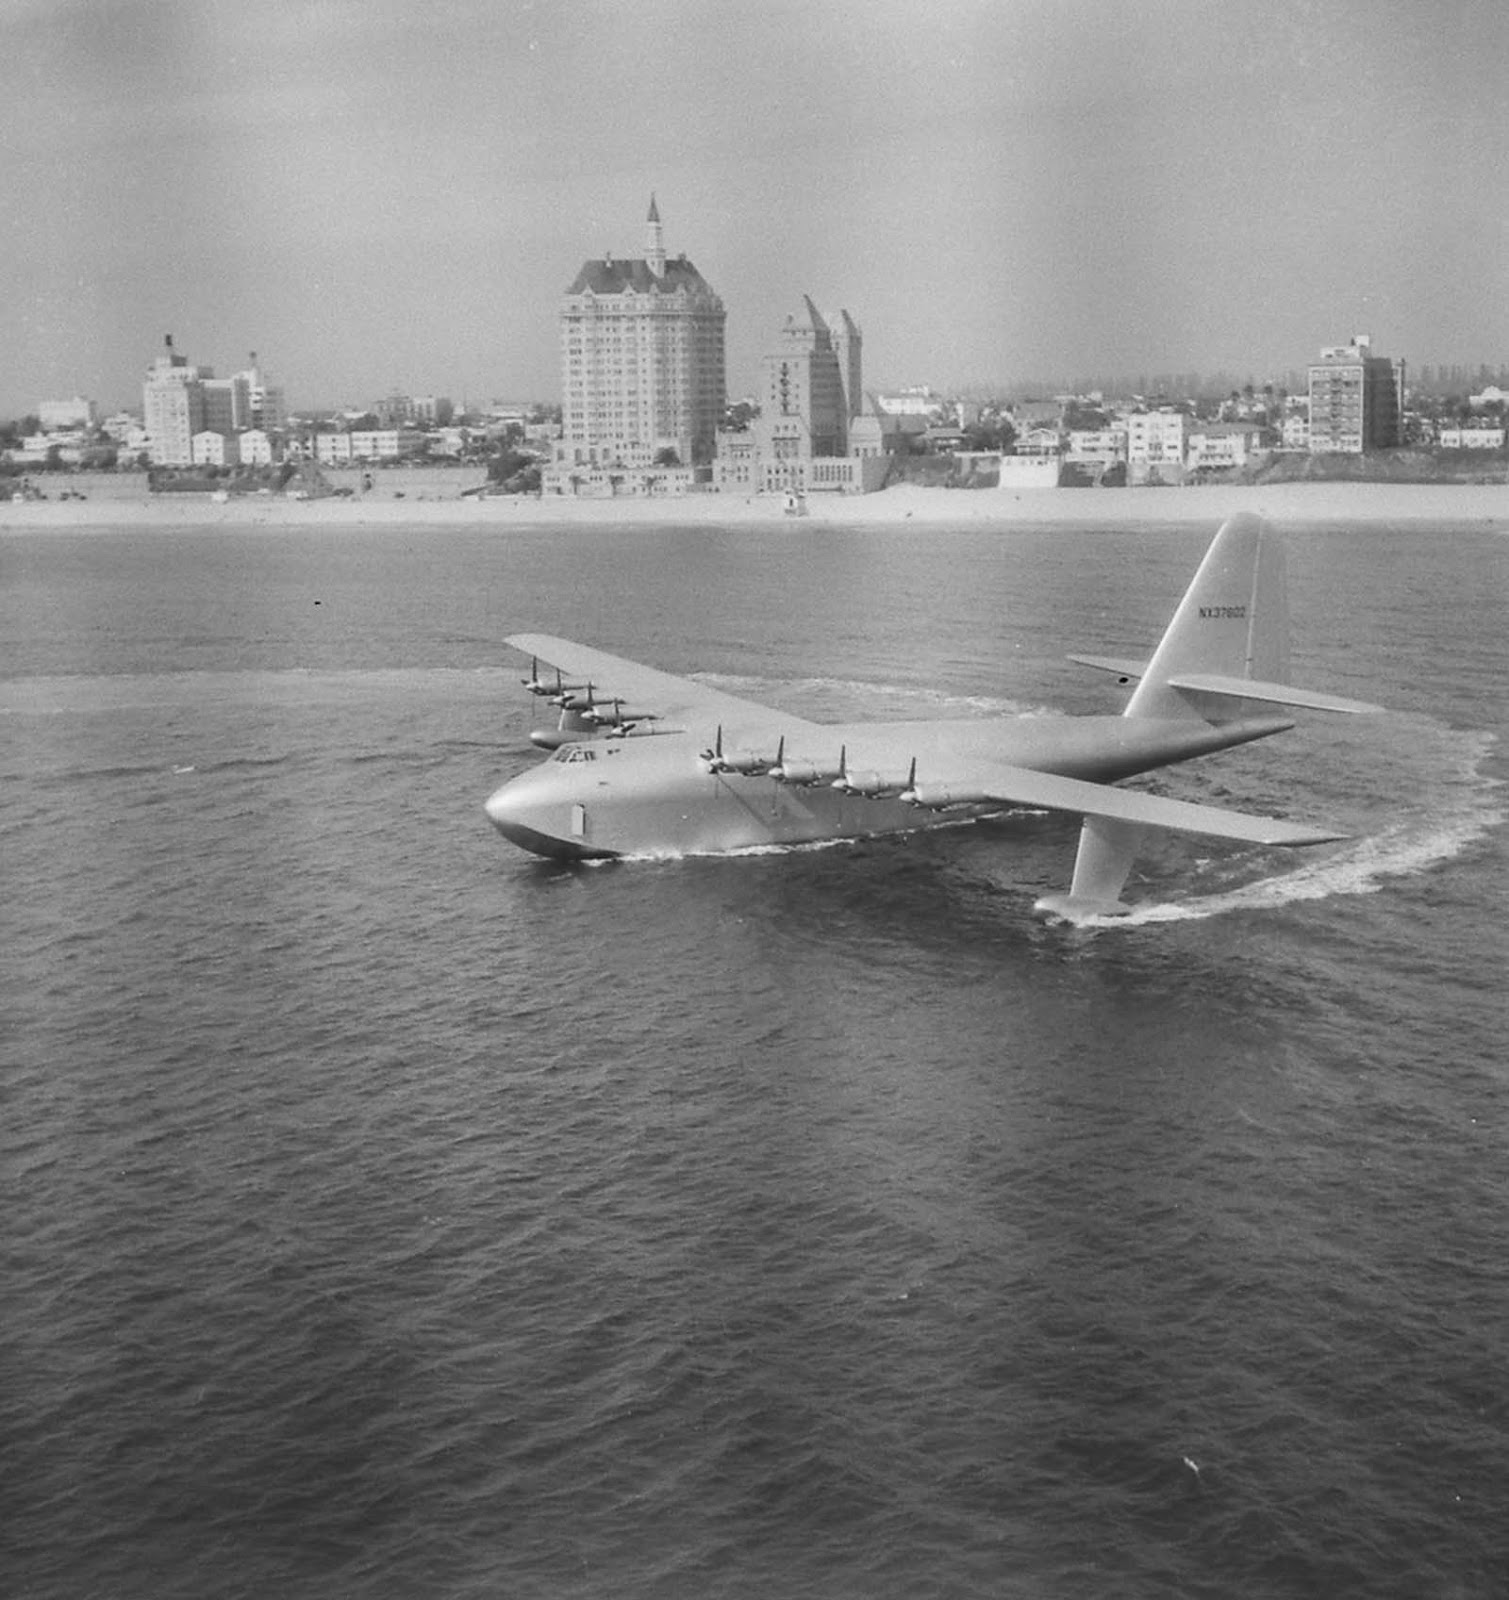 After picking up speed on the channel facing Cabrillo Beach the Hercules lifted off, remaining airborne for 26 seconds at 70 ft (21 m) off the water at a speed of 135 miles per hour (217 km/h) for about one mile (1.6 km).